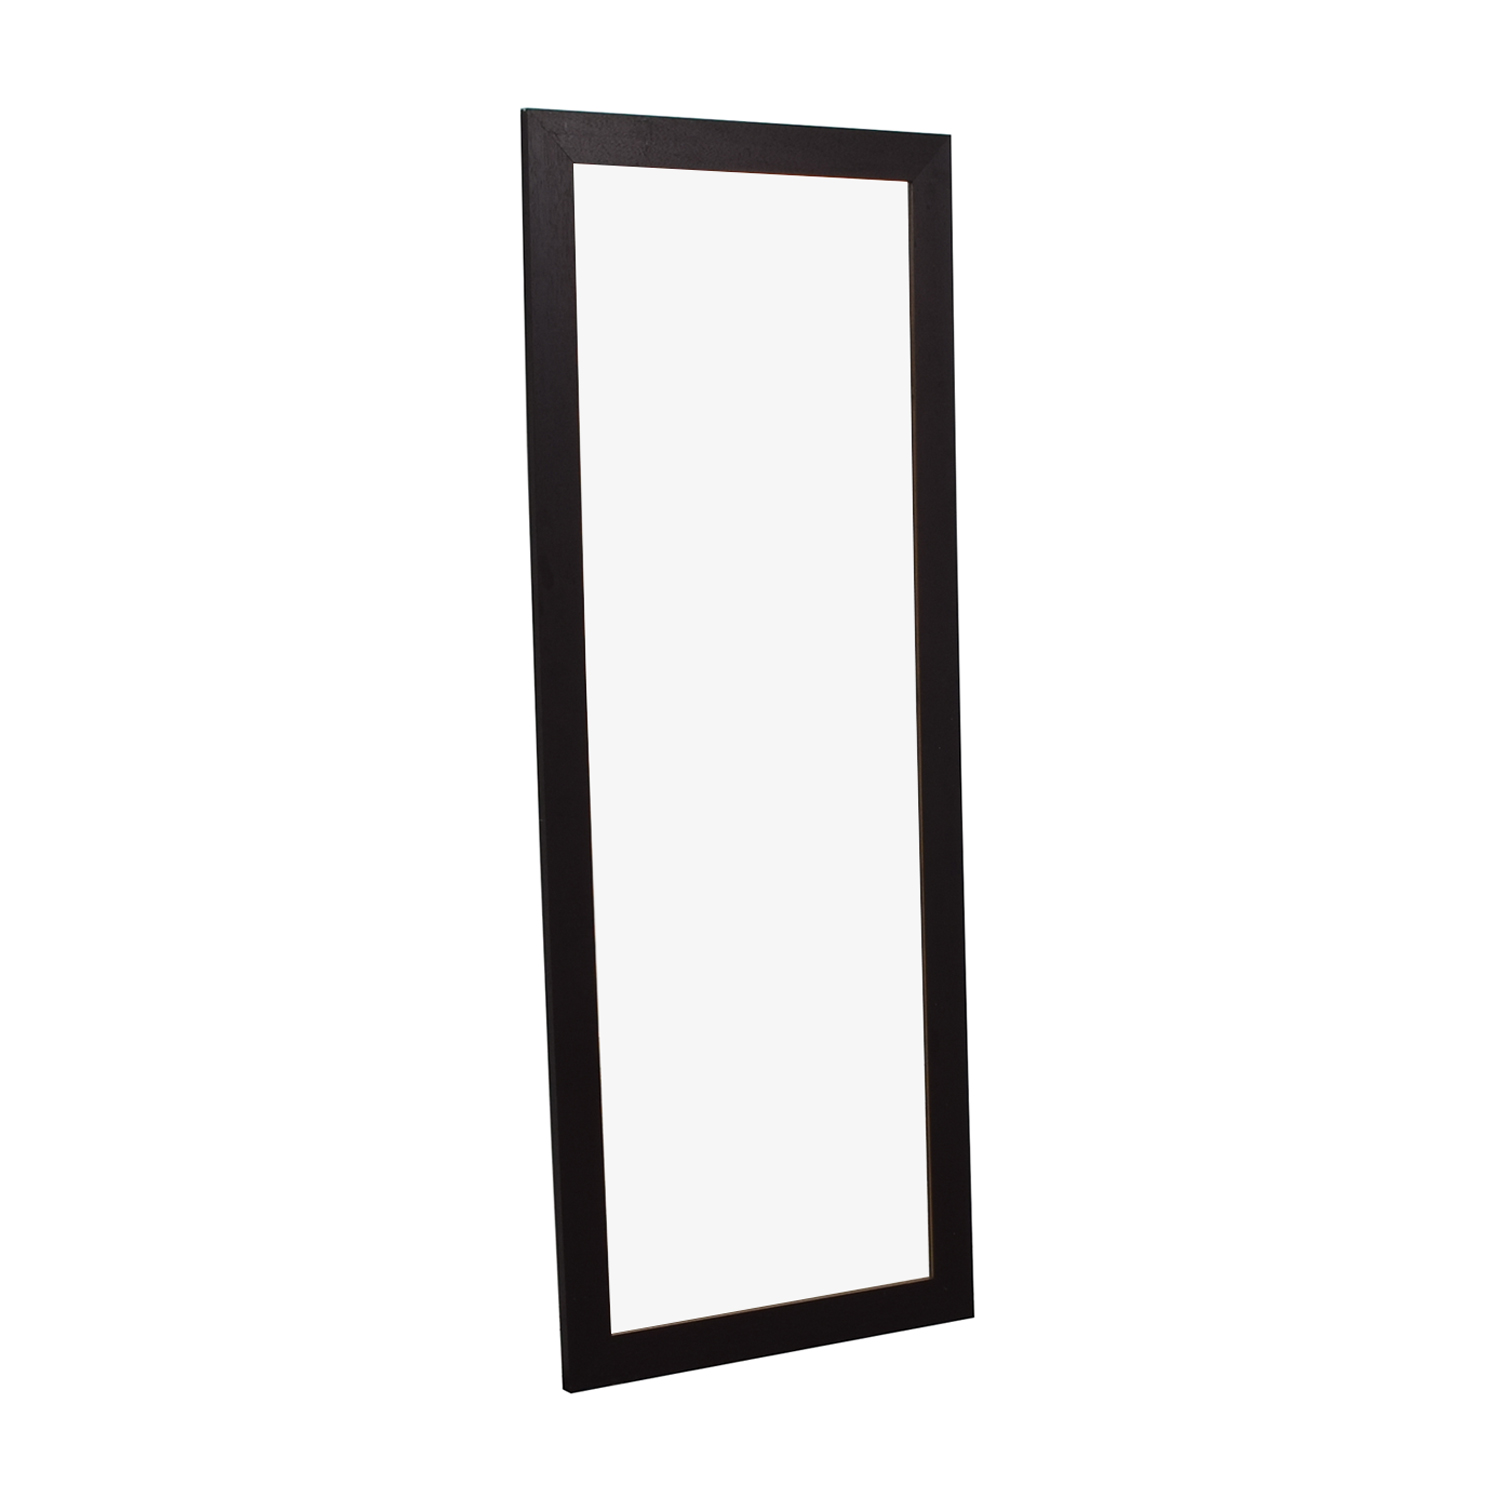 Wood Framed Floor Mirror sale